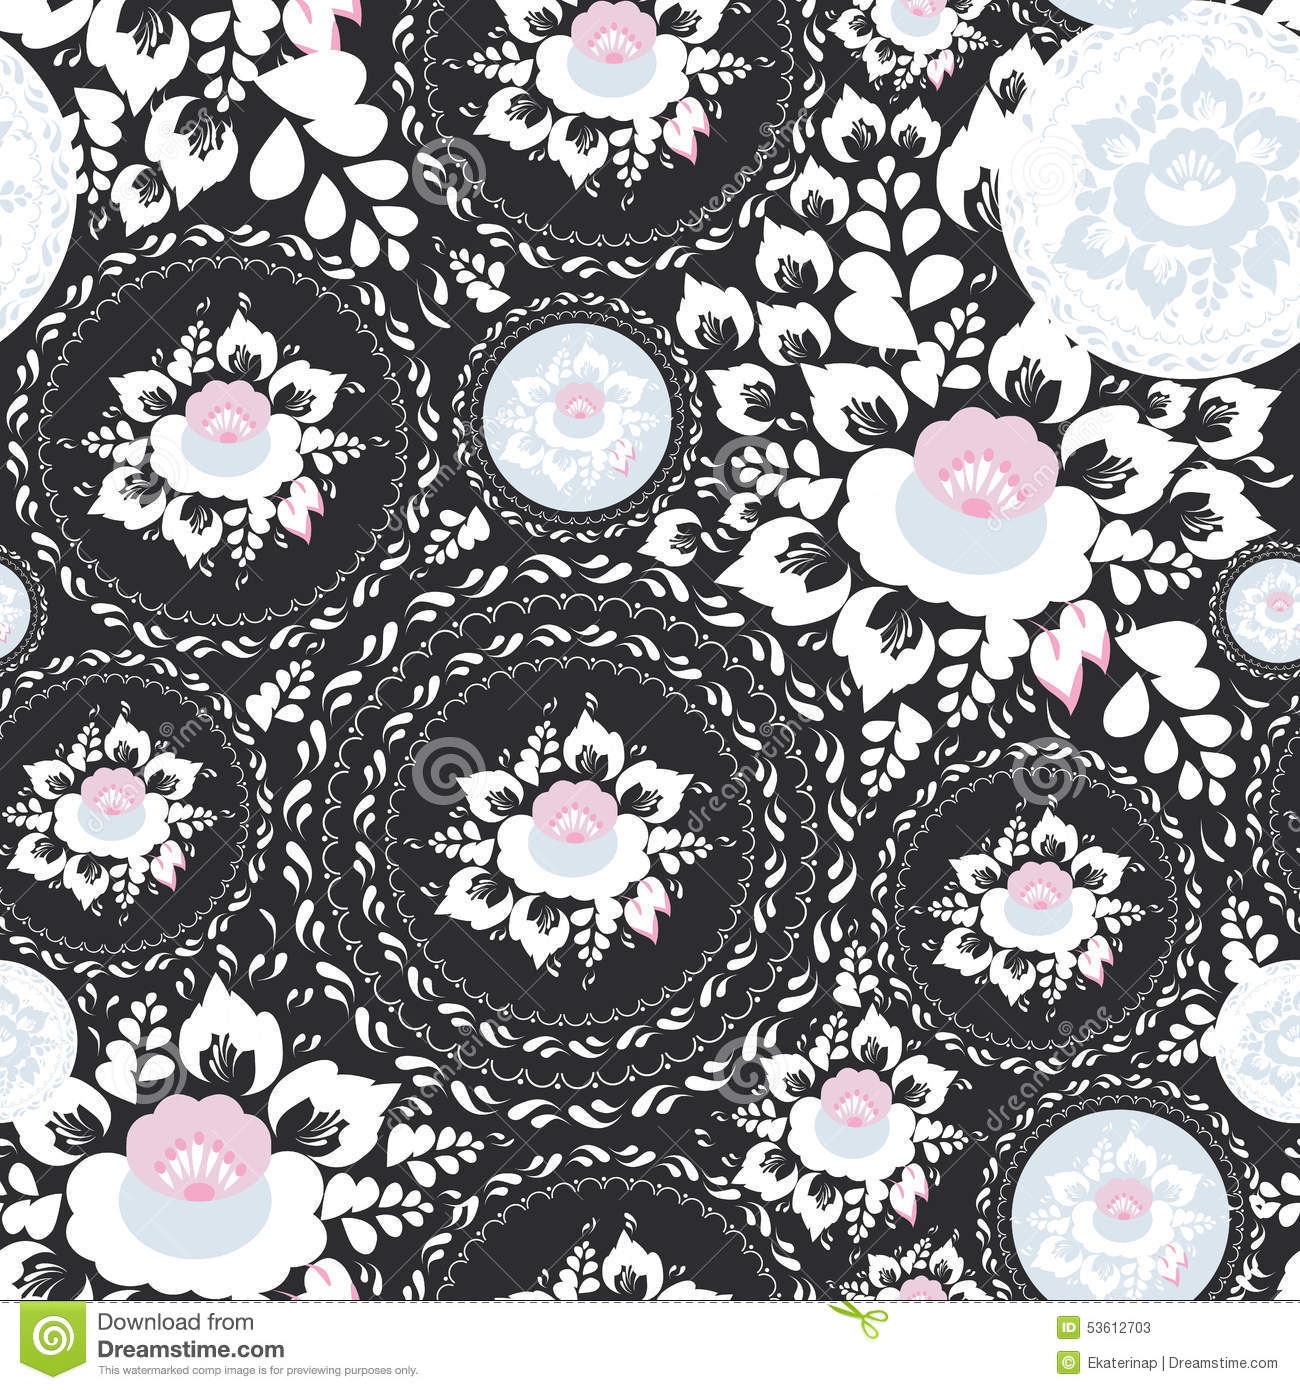 Vintage shabby chic seamless ornament pattern with pink and white background black flowers dhlflorist Choice Image